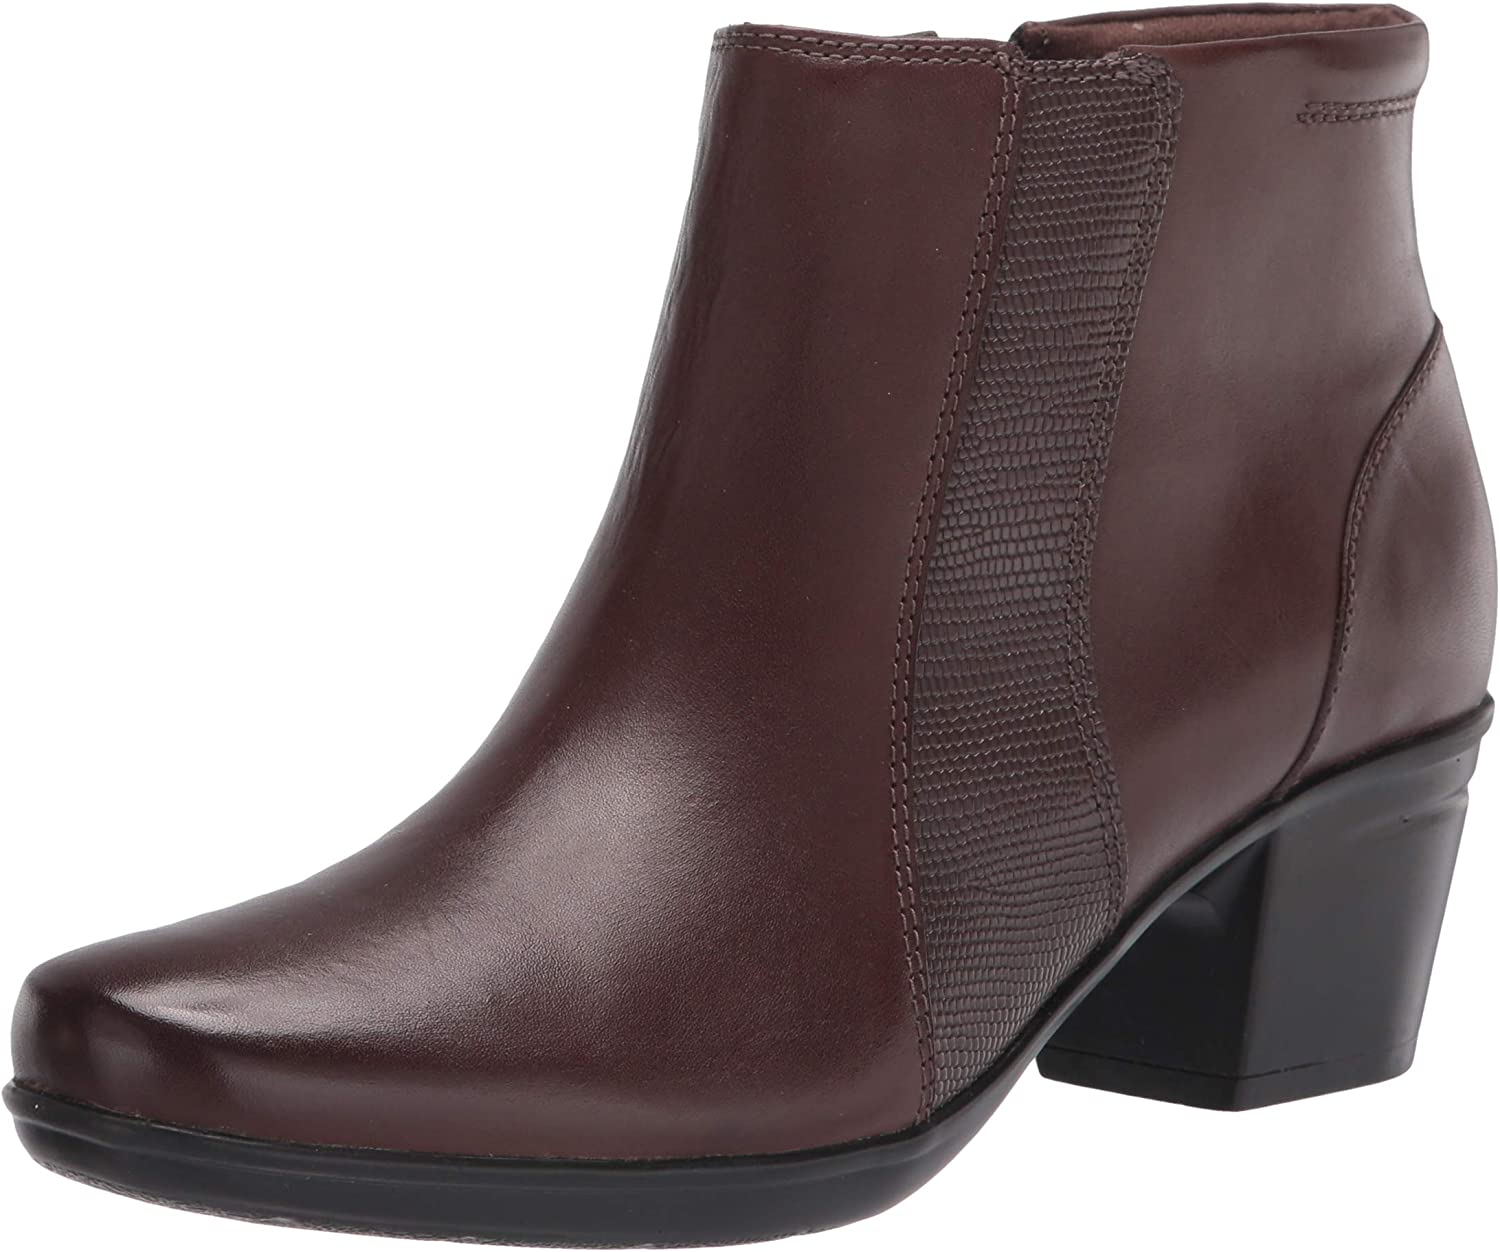 Clarks Women's quality assurance Emslie Ankle Newport Ranking TOP5 Boot